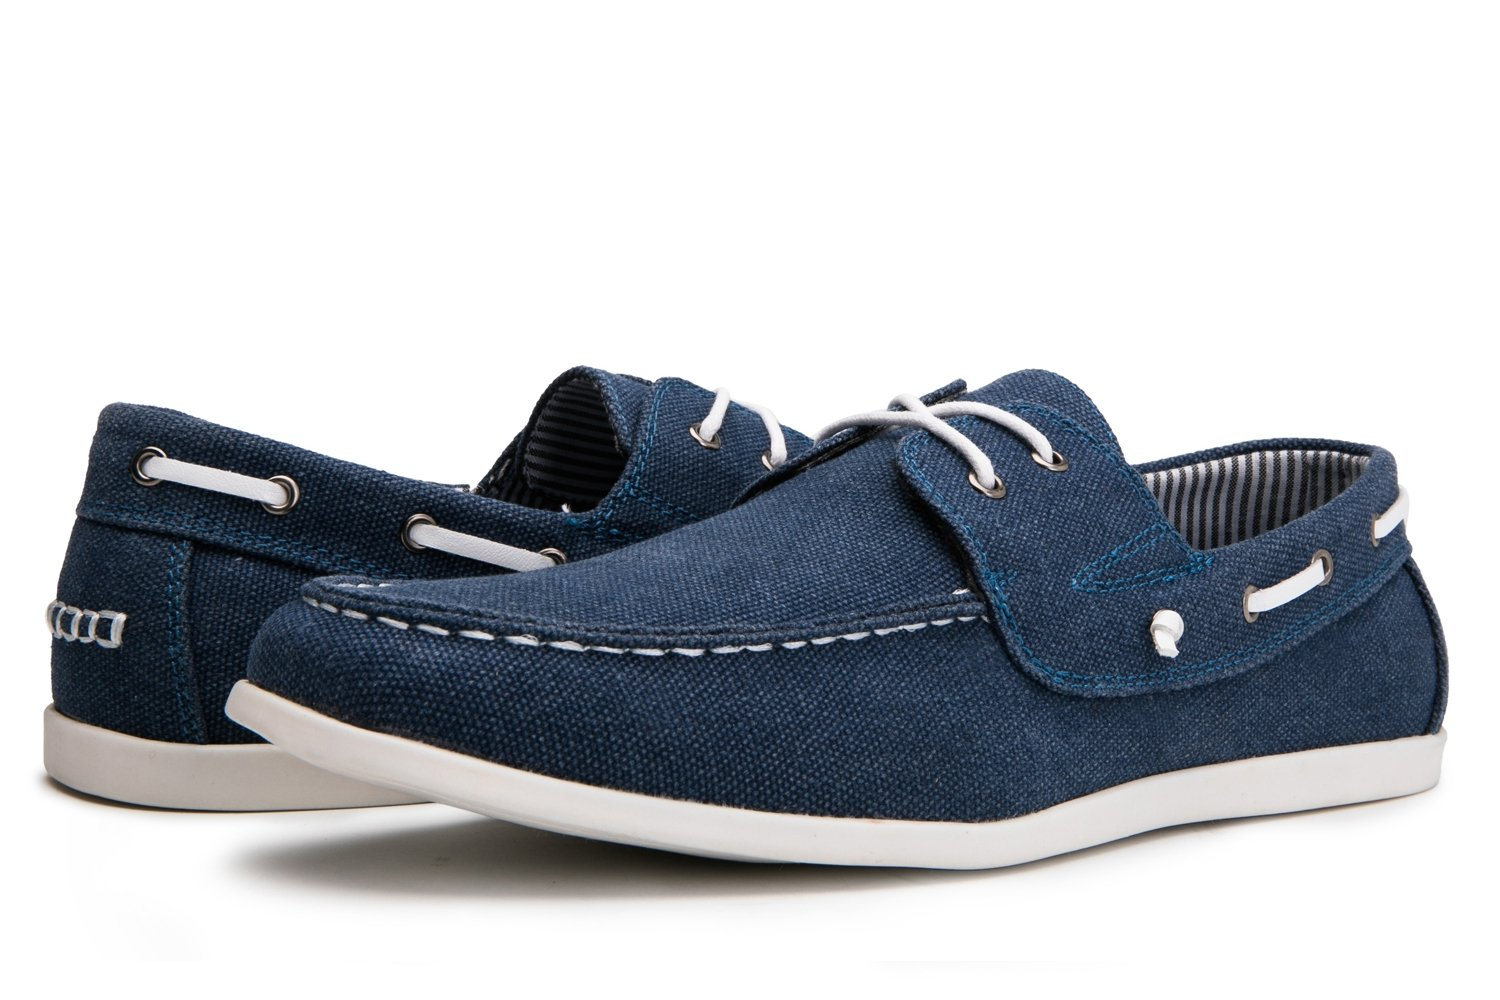 GW M1663-3 Loafers Shoes 11 M by GLOBALWIN